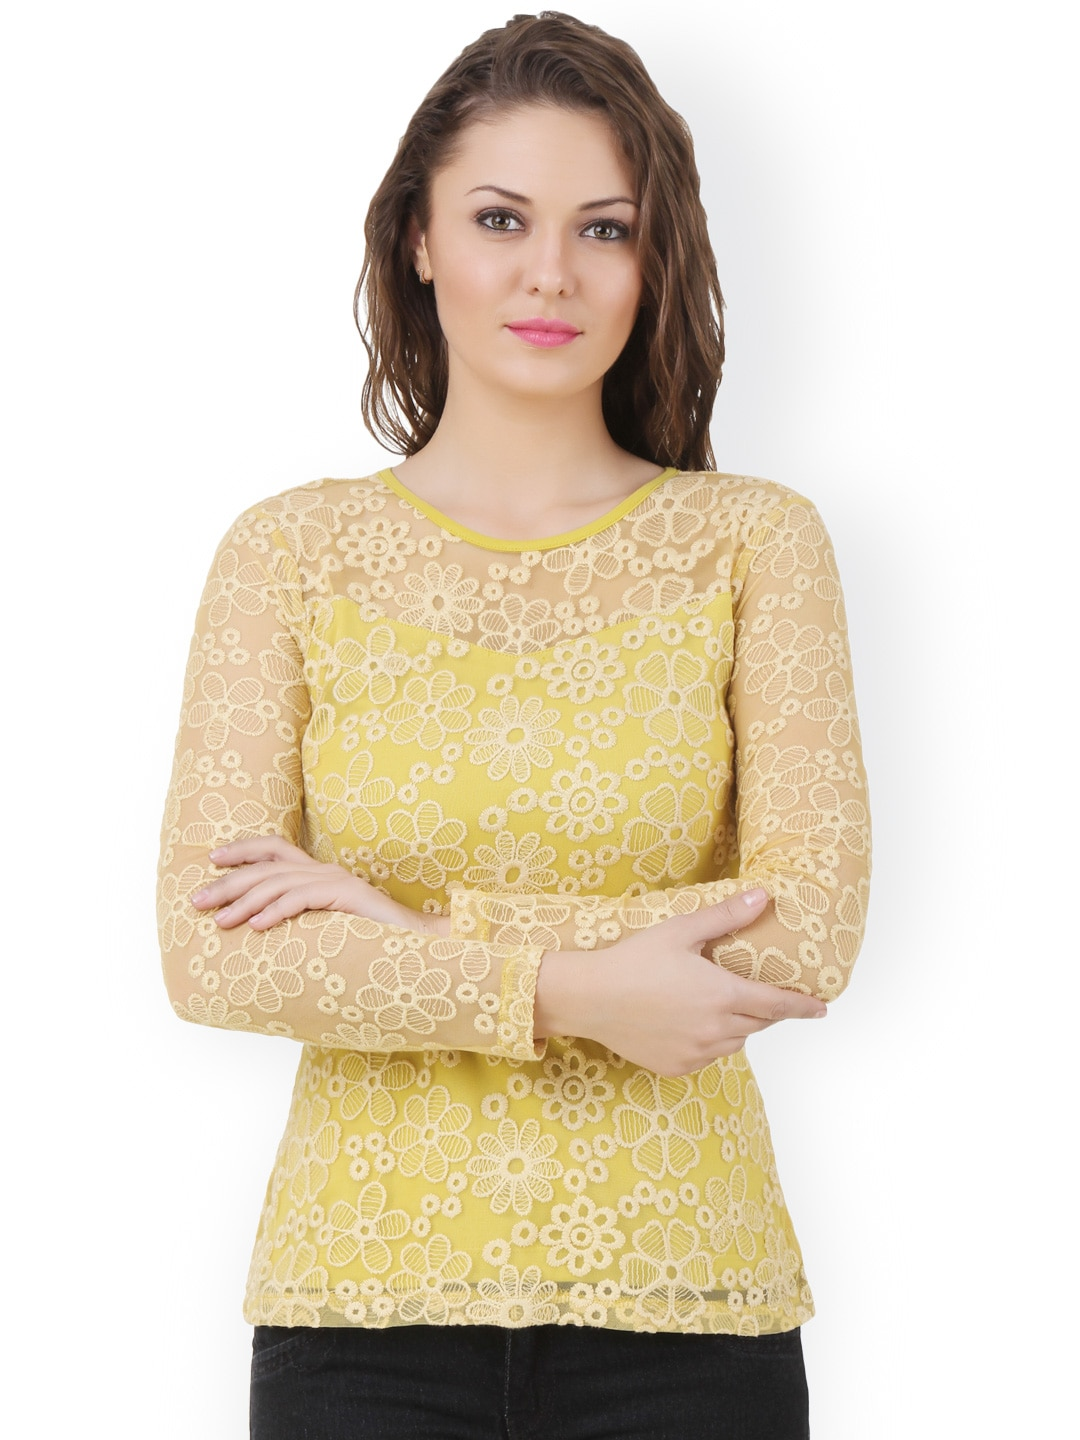 4a0194f66bec4 Texco Tops - Buy Texco Tops online in India